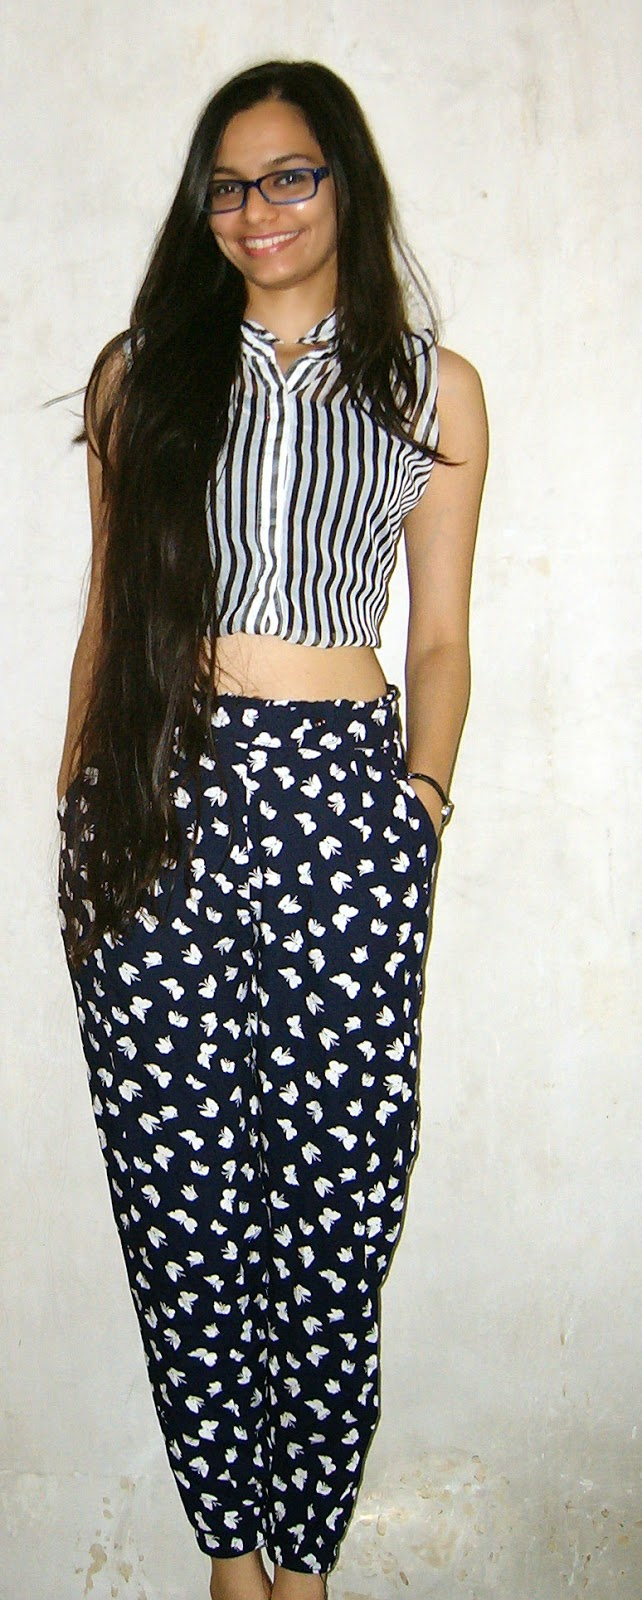 crop top, how to wear crop tops in india, printed trousers, stripes, summer outfit ideas, summer clothing in mumbai, mumbai streetstyle, indian fashion blogger